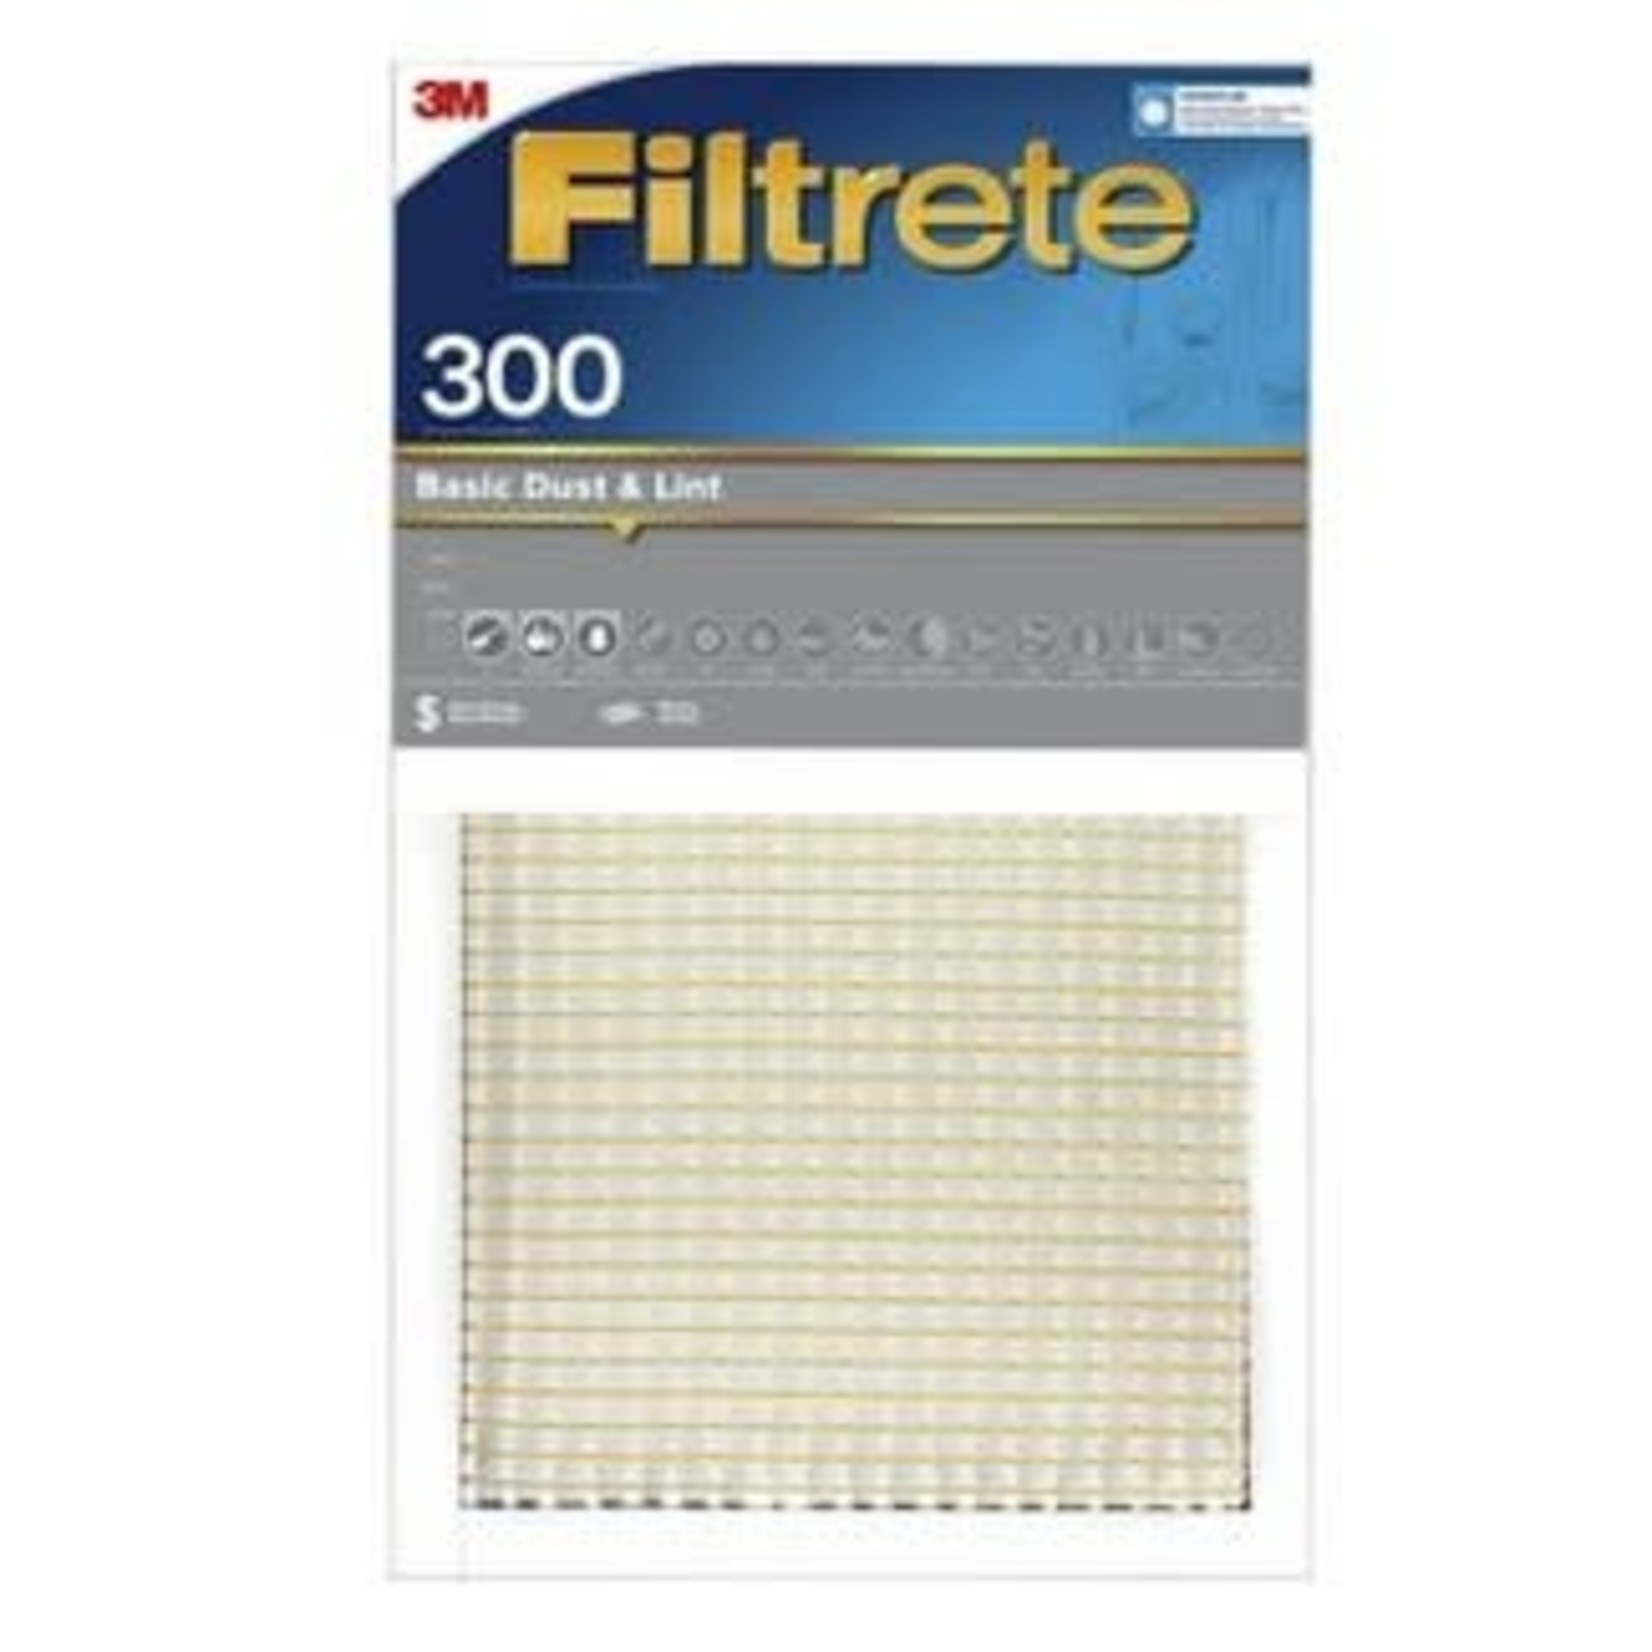 Filtrete Basic Dust and Lint Air Filter 300 MPR